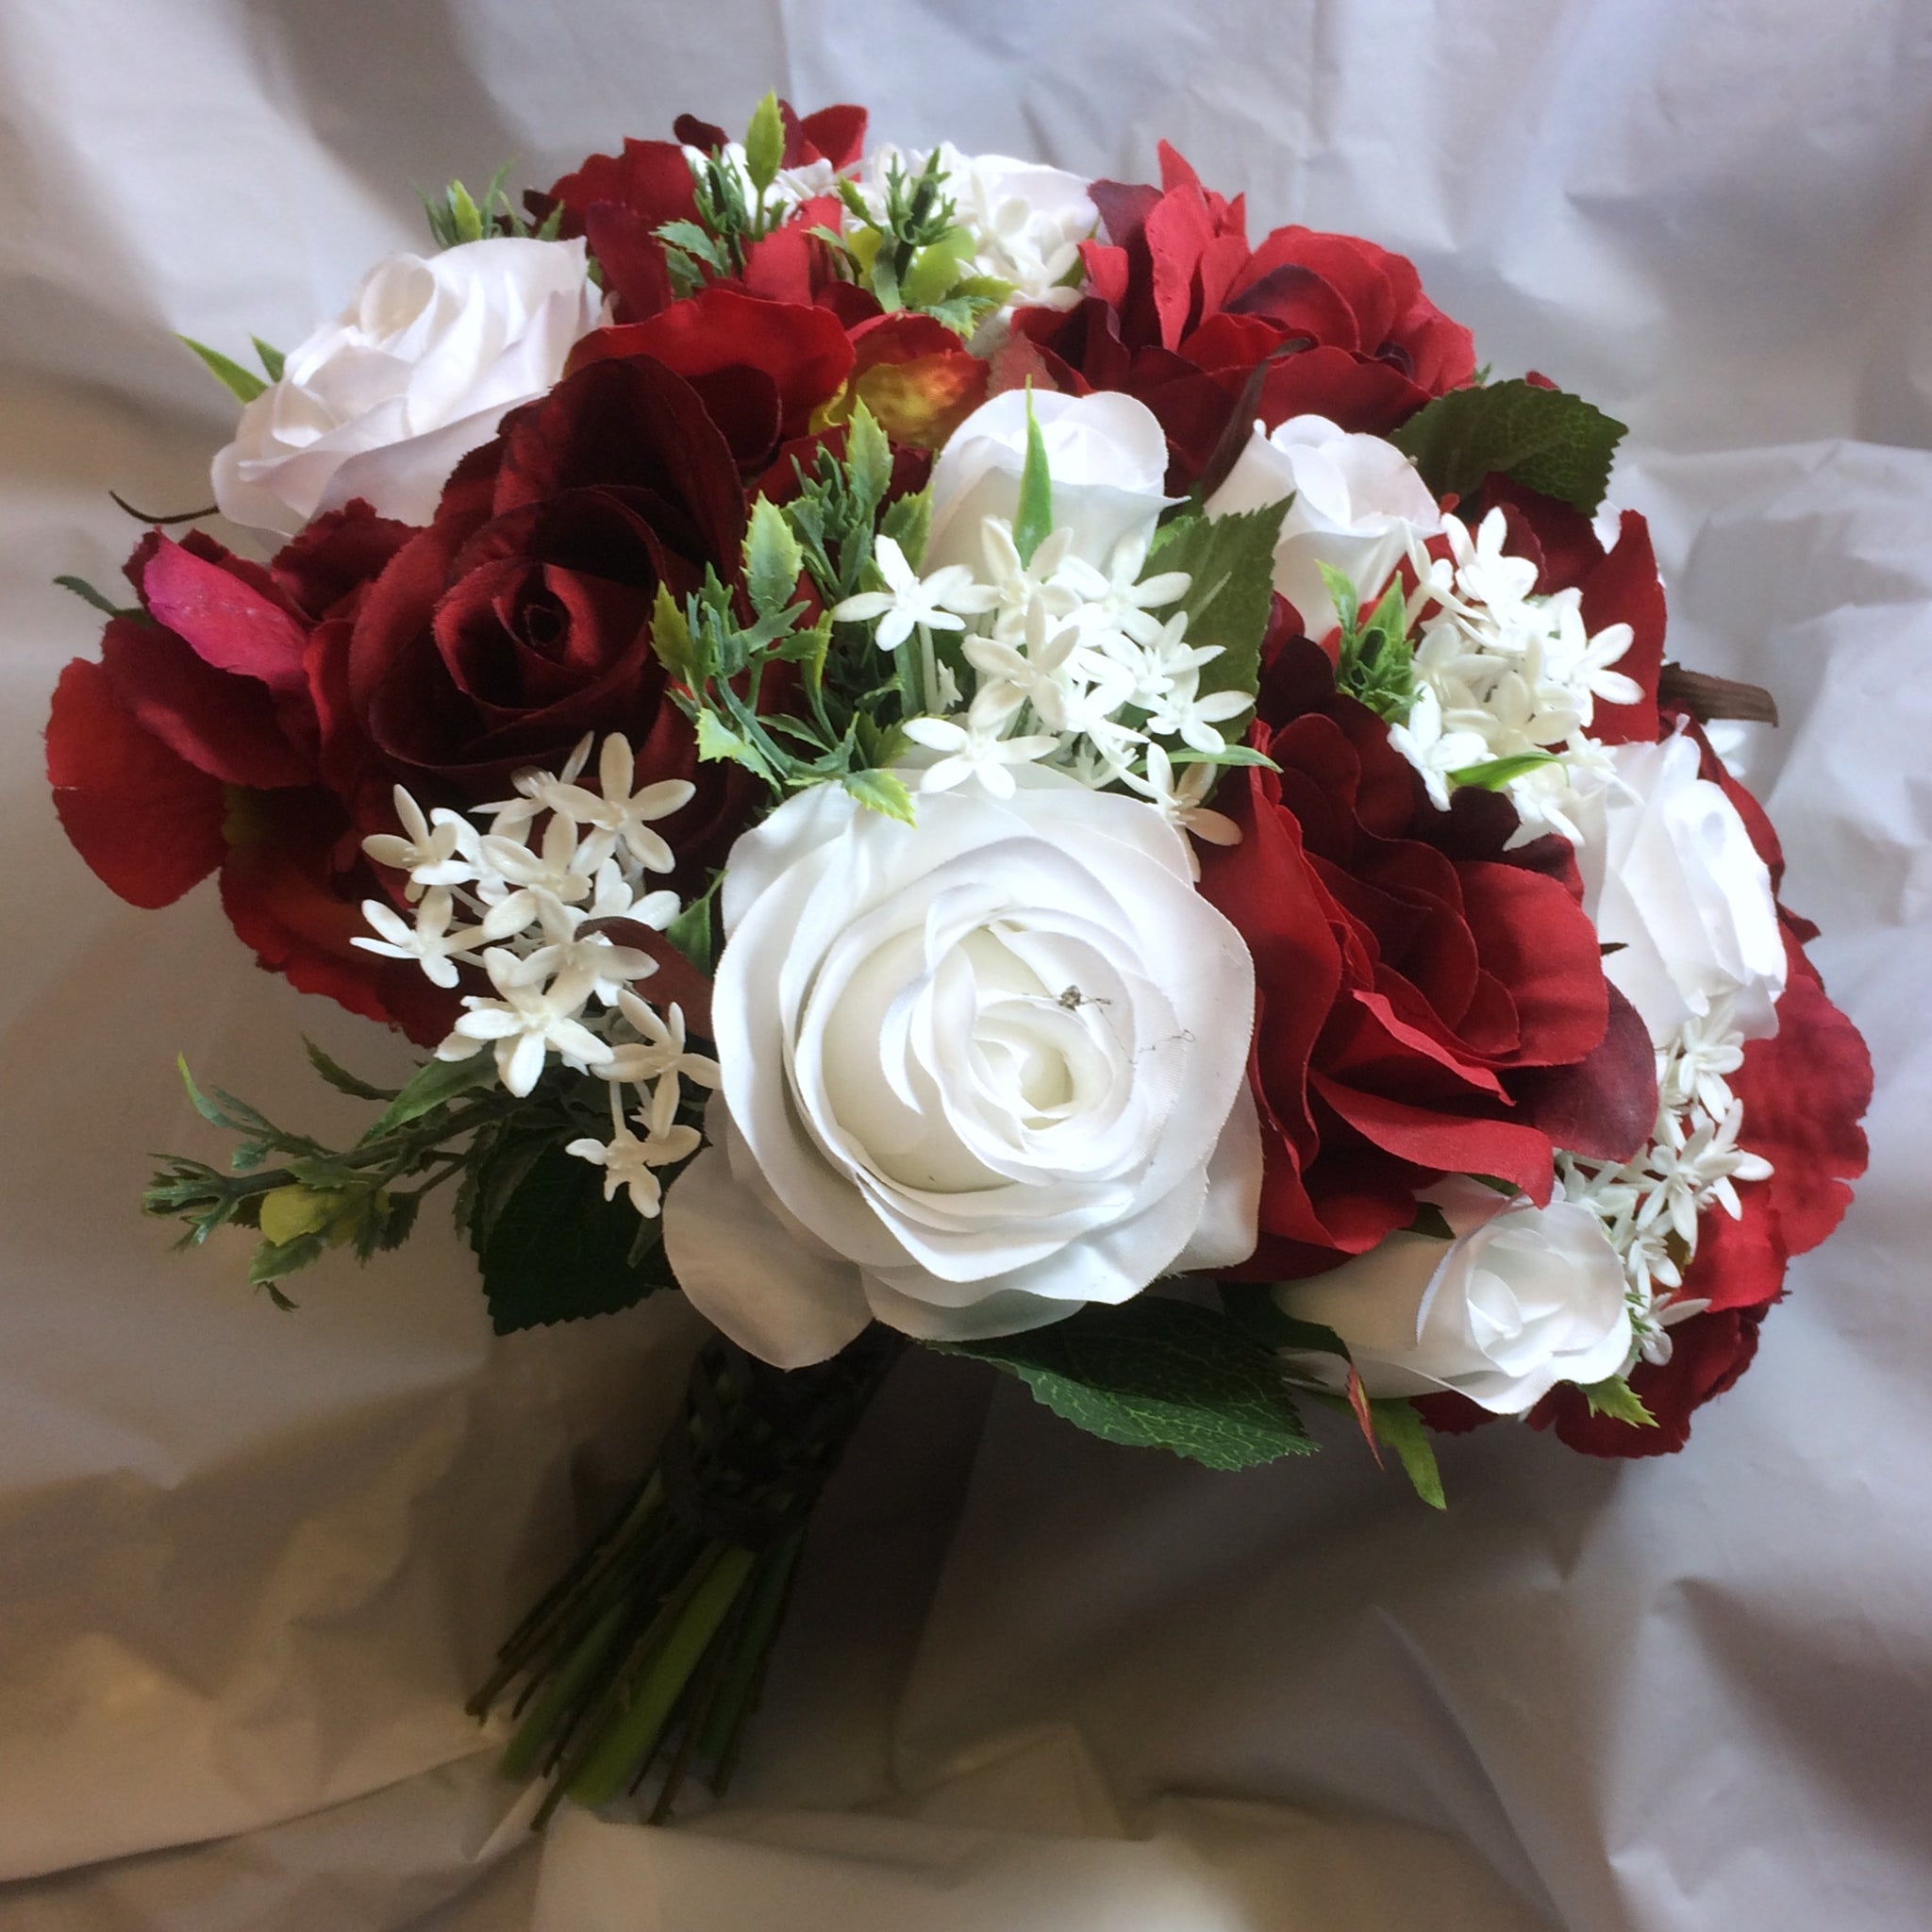 An Artificial Silk Bridal Bouquet Of Red And White Flowers Abigailrose